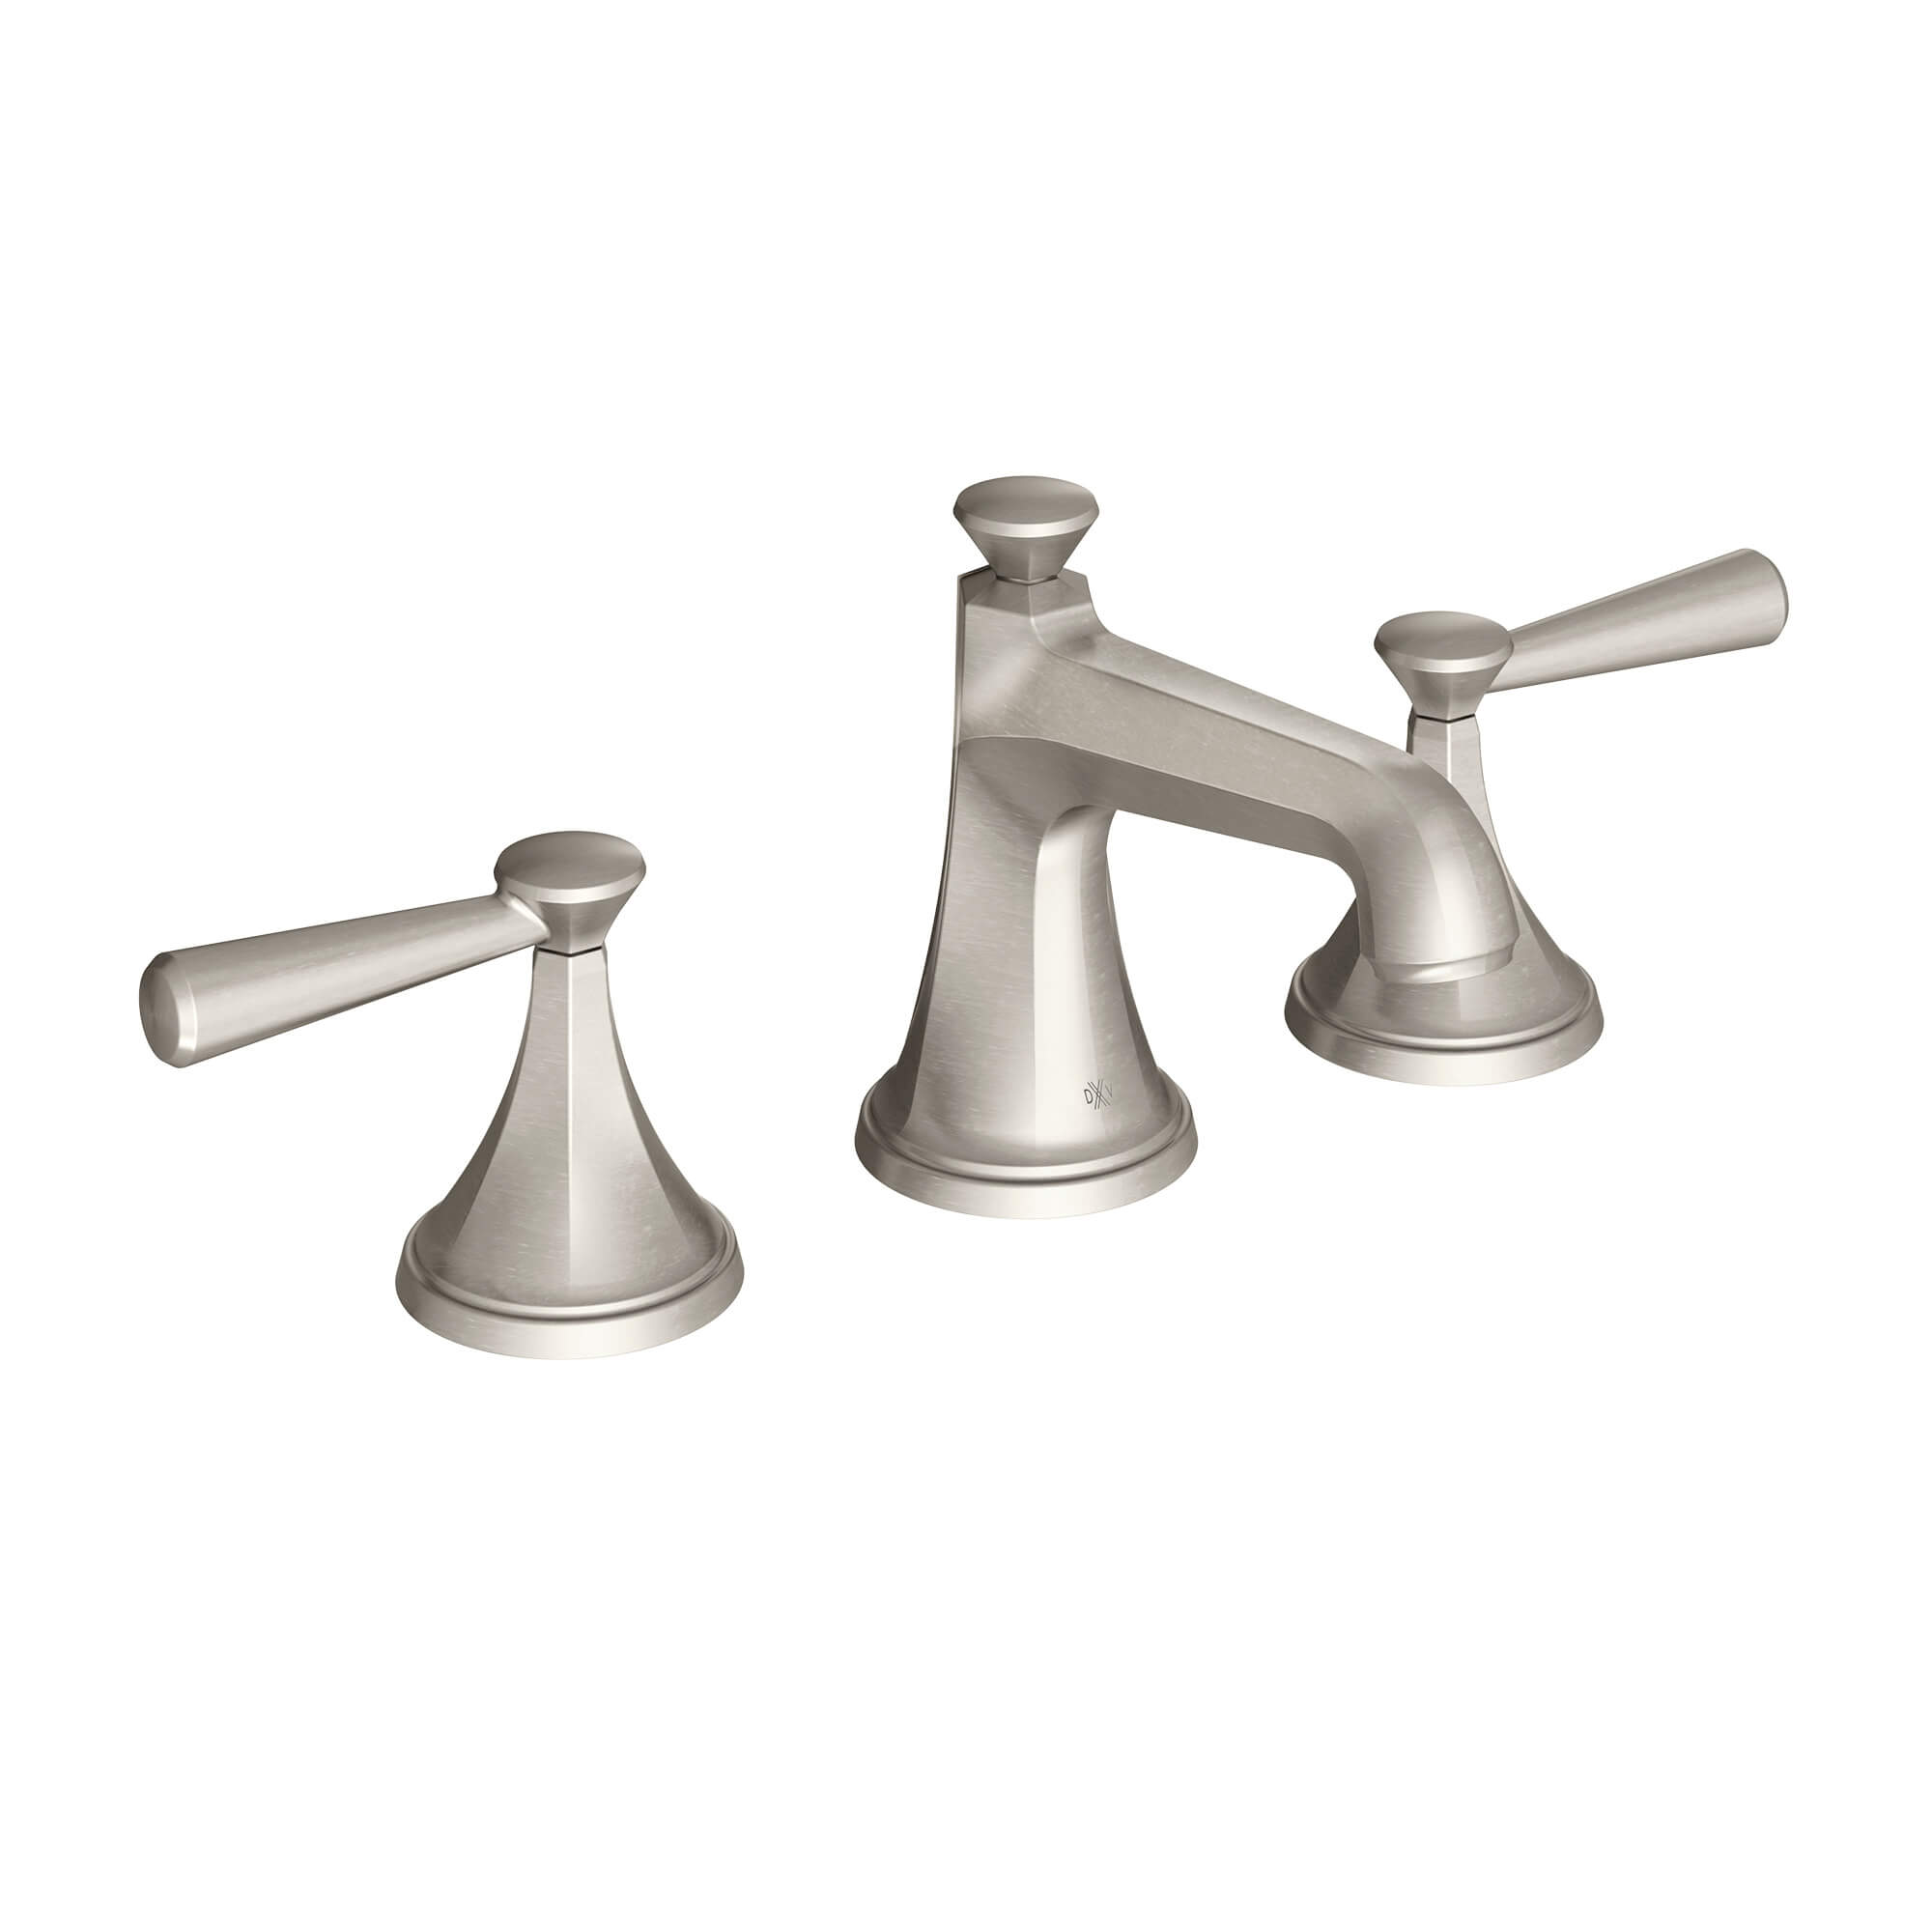 High-end toilets, faucets, sinks, showers, bathtubs ...